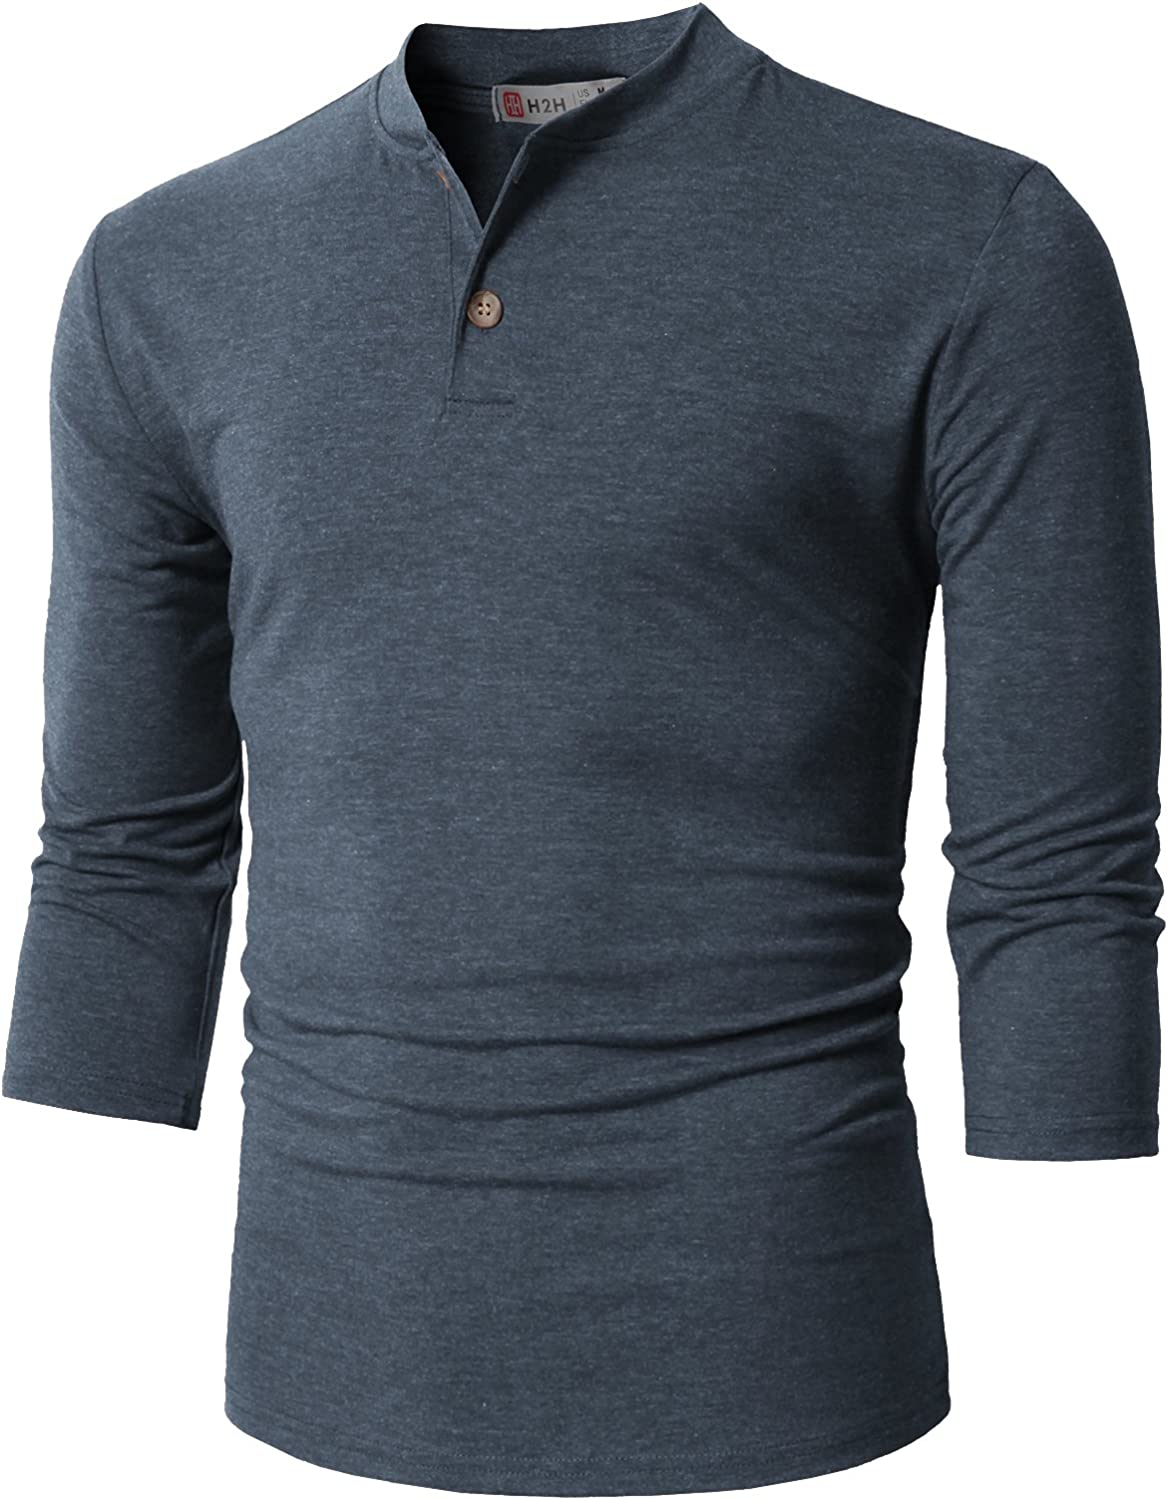 H2H Mens Casual Premium Slim Fit Henley Shirts Lightweight Thin Fabric